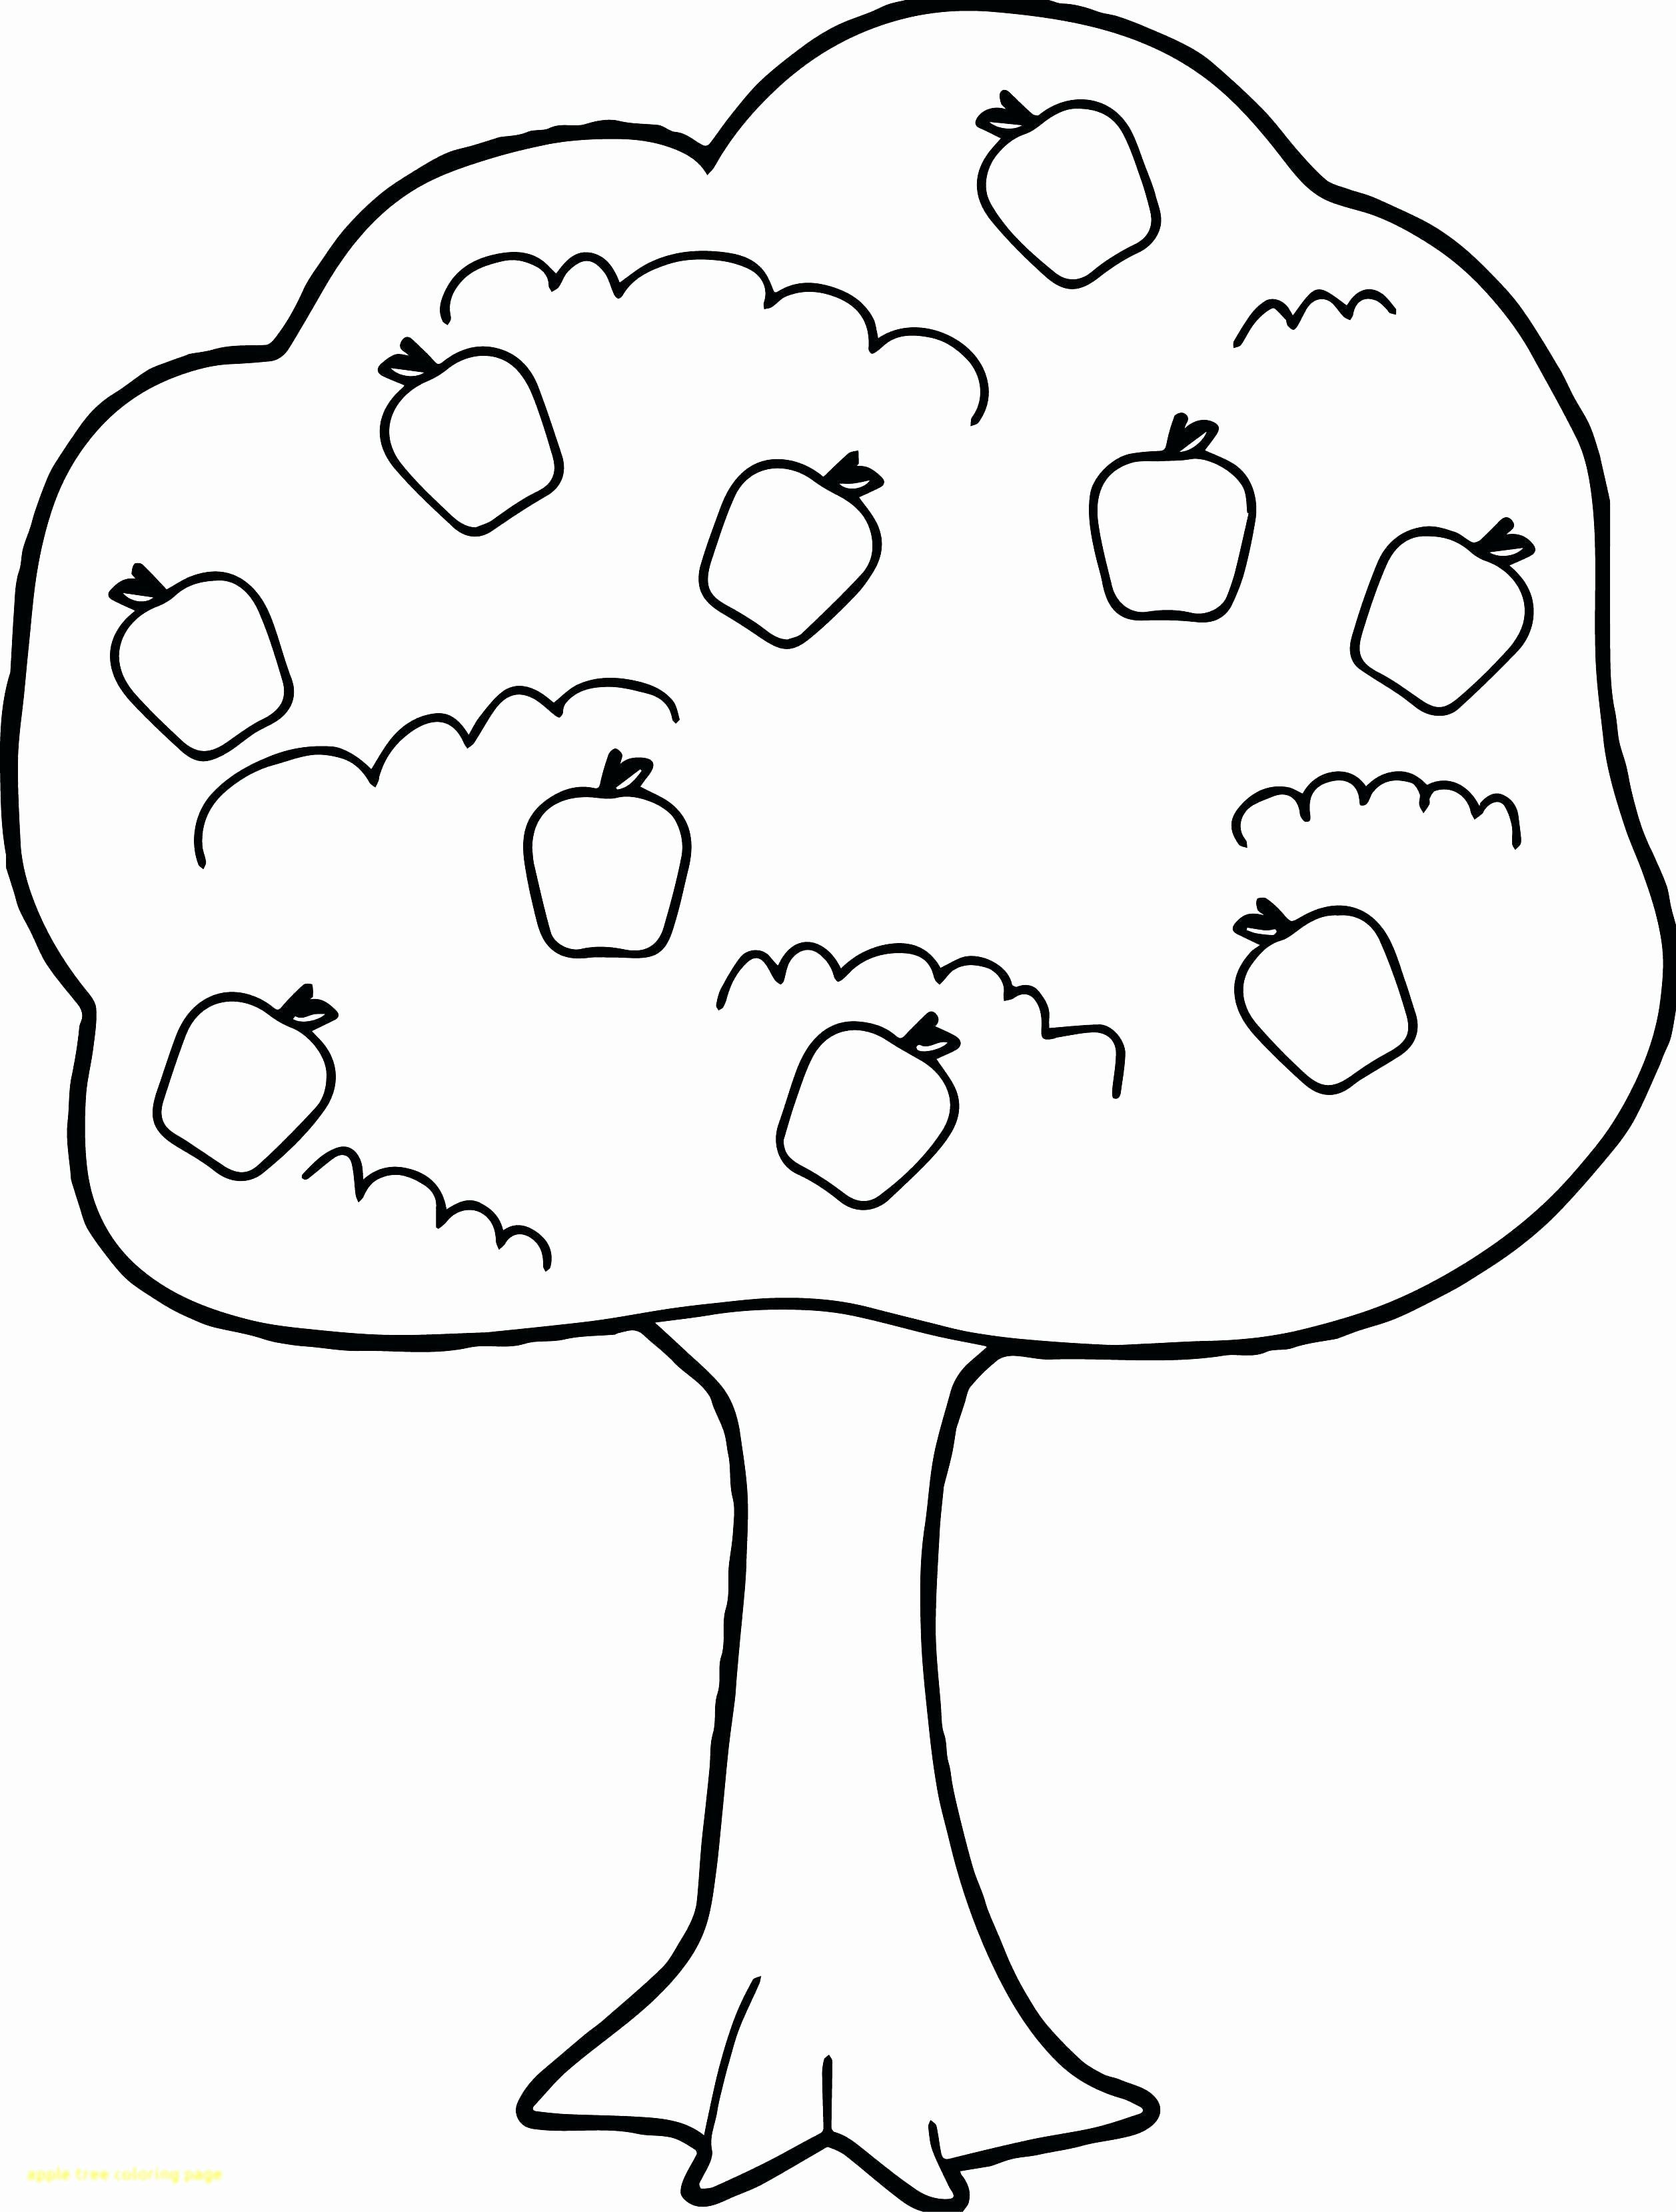 Family Tree Coloring Sheet Beautiful Coloring Pages Of